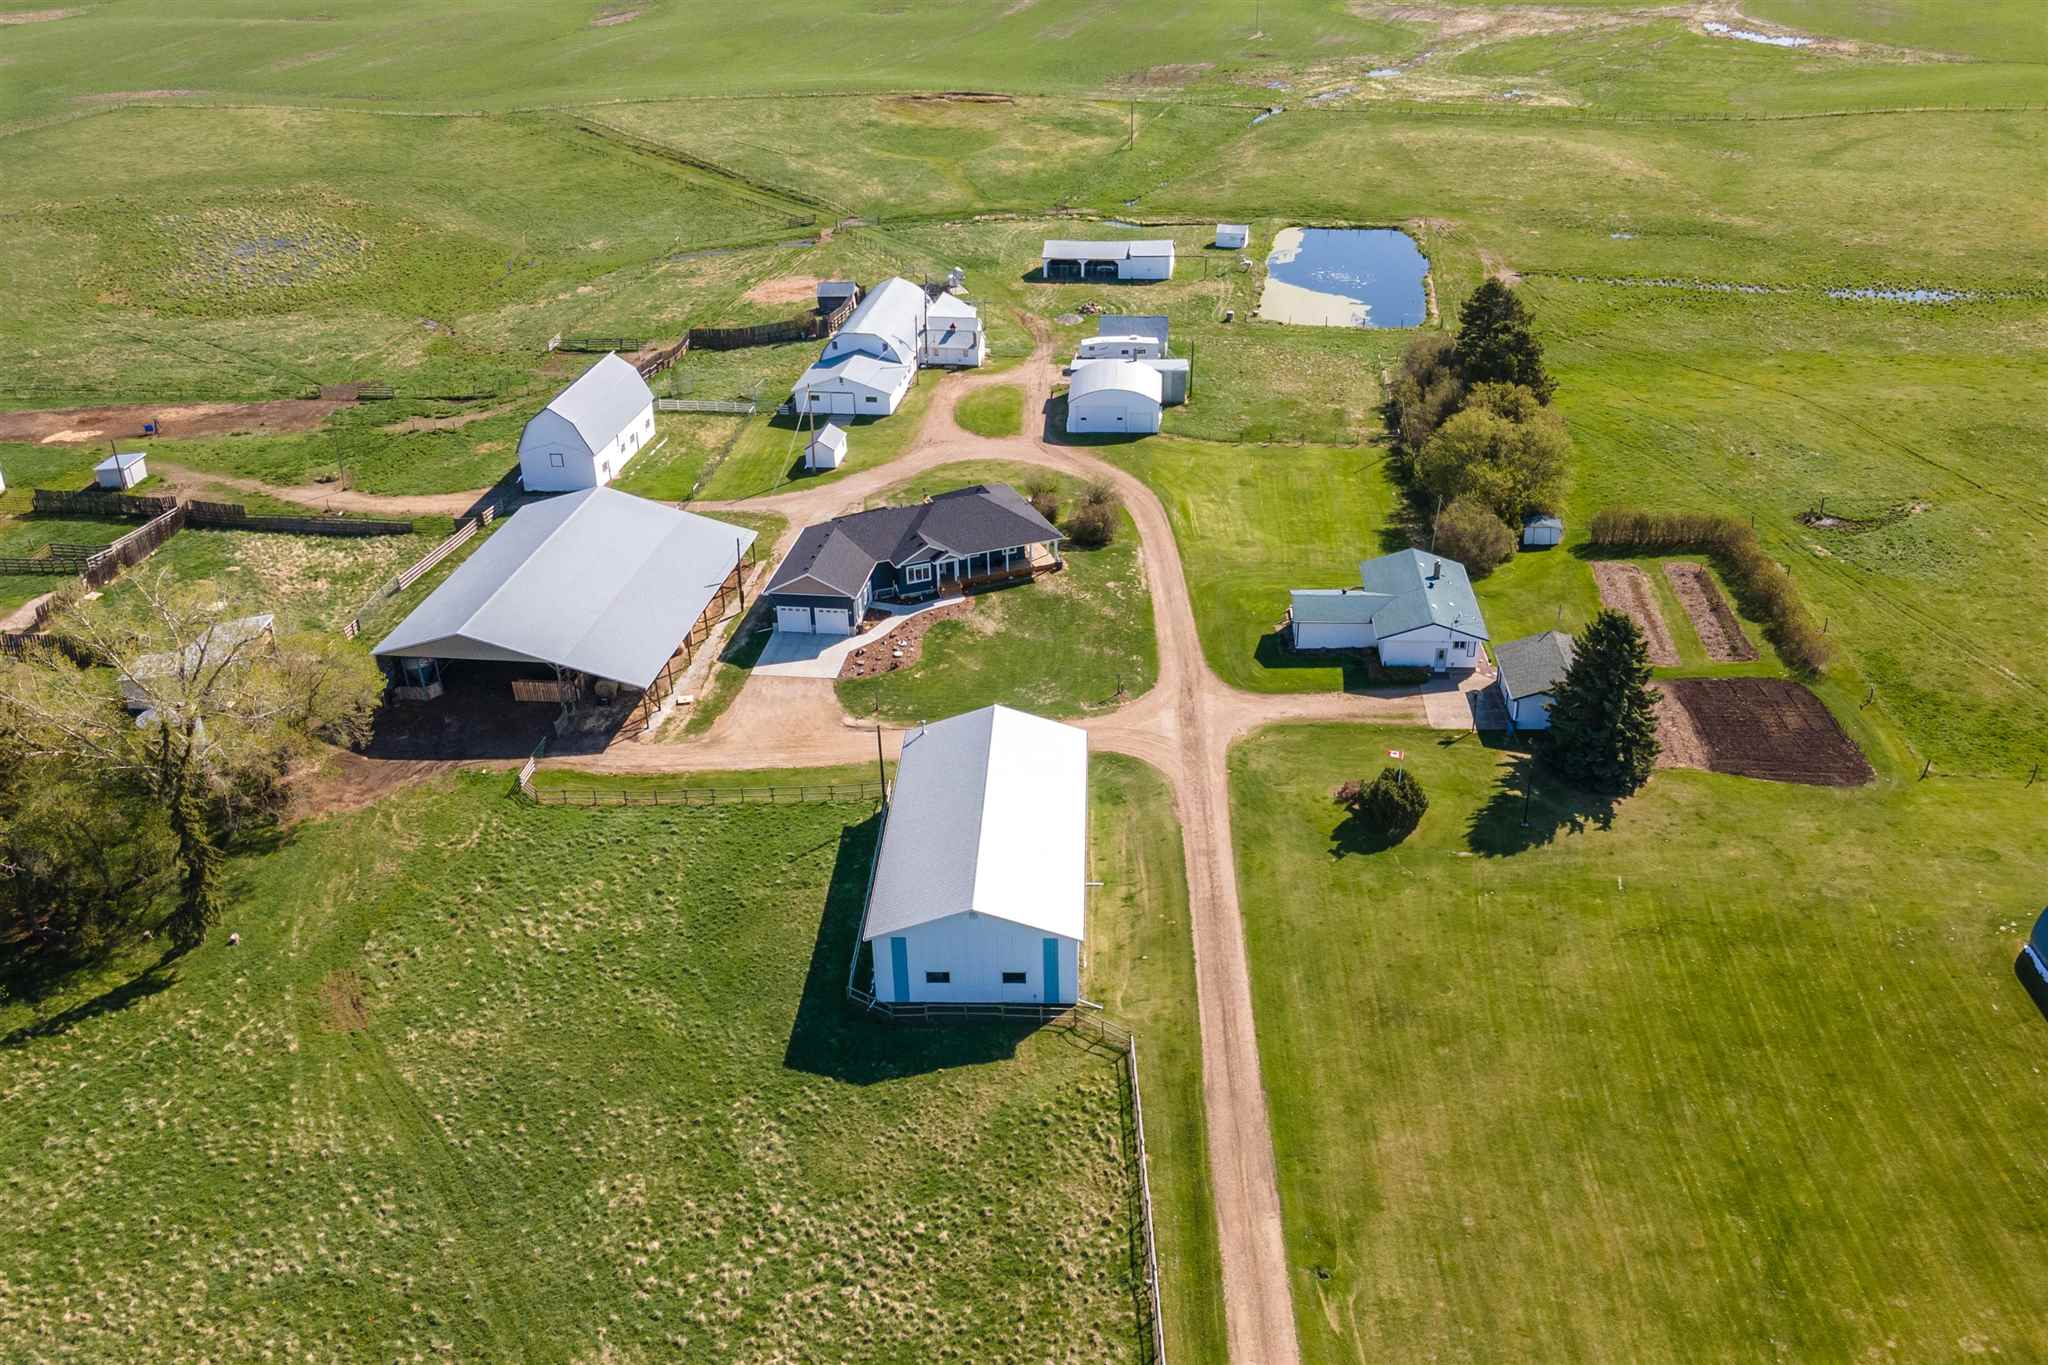 Imagine, 160 acres (2 separately titled 80 acre parcels) in the City of Edmonton, with 2 lovely residences, numerous shops & barns, gated & fenced & cross fenced that runs from 34 Street East to 17 street, one mile wide by 1/2 mile deep. Possibilities are endless. This land has been tentatively zoned future residential by the City of Edmonton. Approximately 55 acres in hay & the balance in pasture with maternity pens in the barn. A family homestead, the original barn was built in 1900, there is a 40'x80' shop with underslab heat & 20'x14' OH door, 50'x100' Quonset with dirt floor (cold storage), 2 barns 100'x40' & 70'x25' plus numerous other well maintained buildings. Offering 3000 sq. ft. of development in the (2020 built) gorgeous 'Modern Farmhouse' bungalow featuring underslab heat, 4 beds, 3 baths, AC & an attached garage. The 2nd. home is an immaculate 1467 developed bungalow, has had an addition & major renos & offers 4 beds & 2 baths & a detached double garage.  2 wells, a 3200 gal. cistern & more!